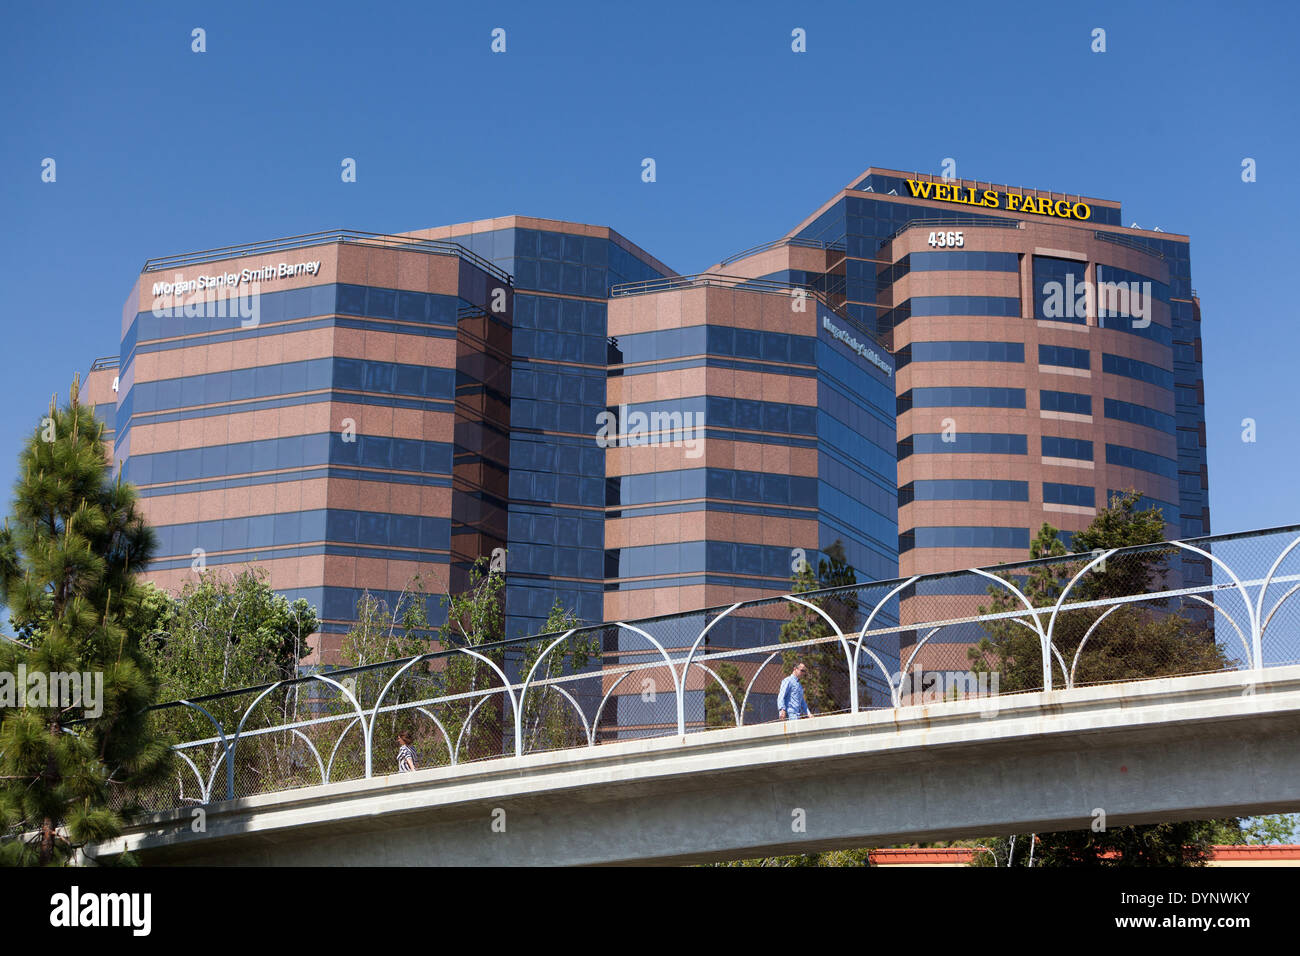 Wells fargo office stock photos wells fargo office stock images alamy - National express head office number ...